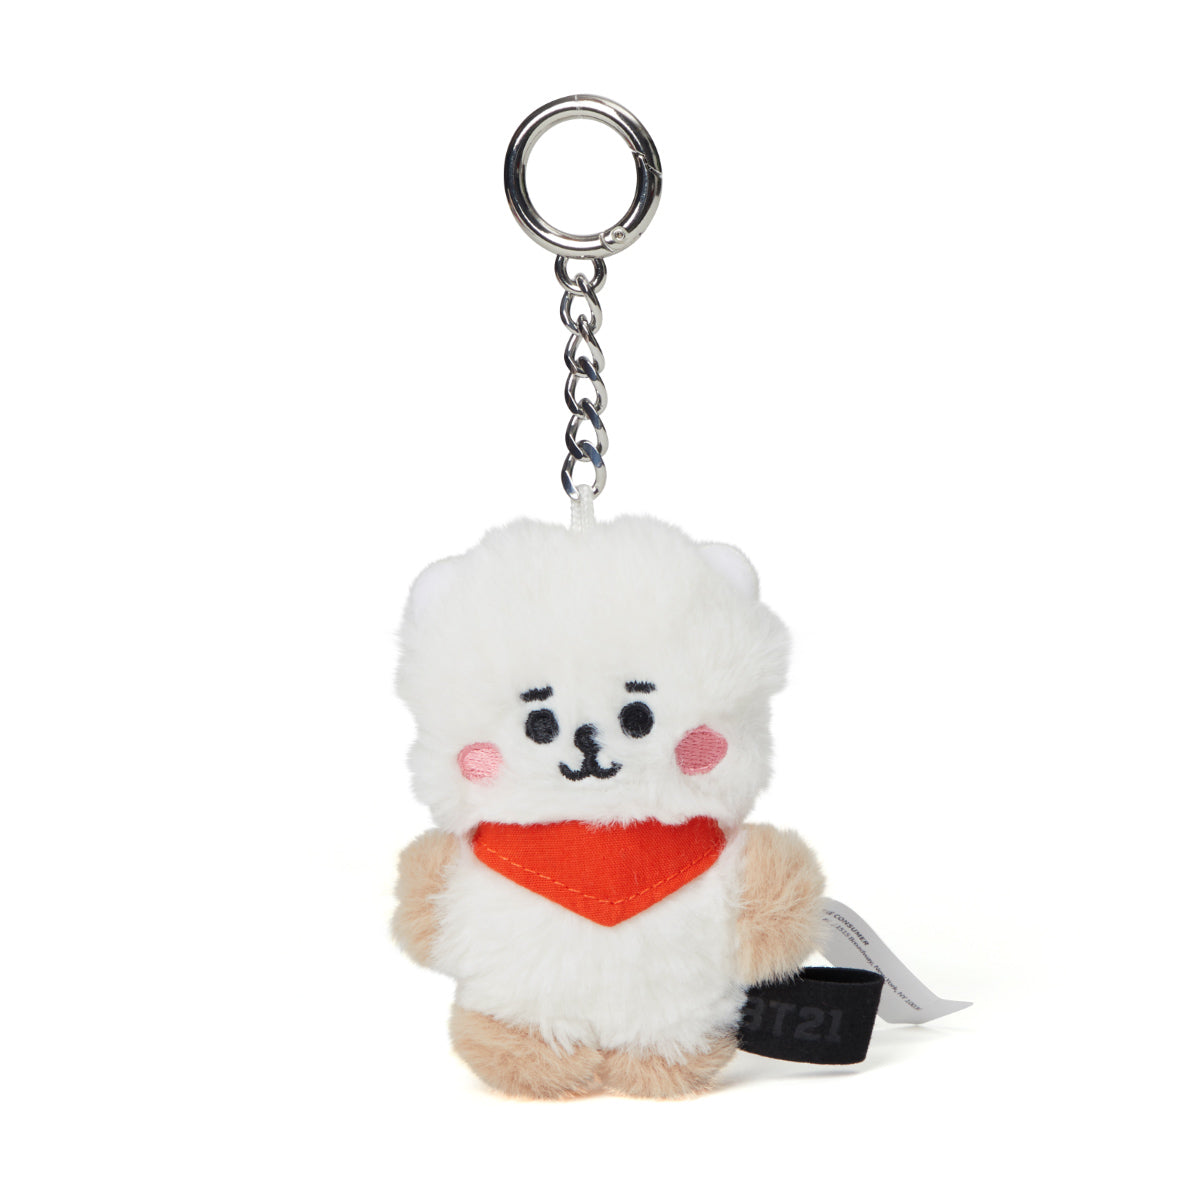 BT21 RJ Baby Flat Fur Bag Charm Plush 3.9""